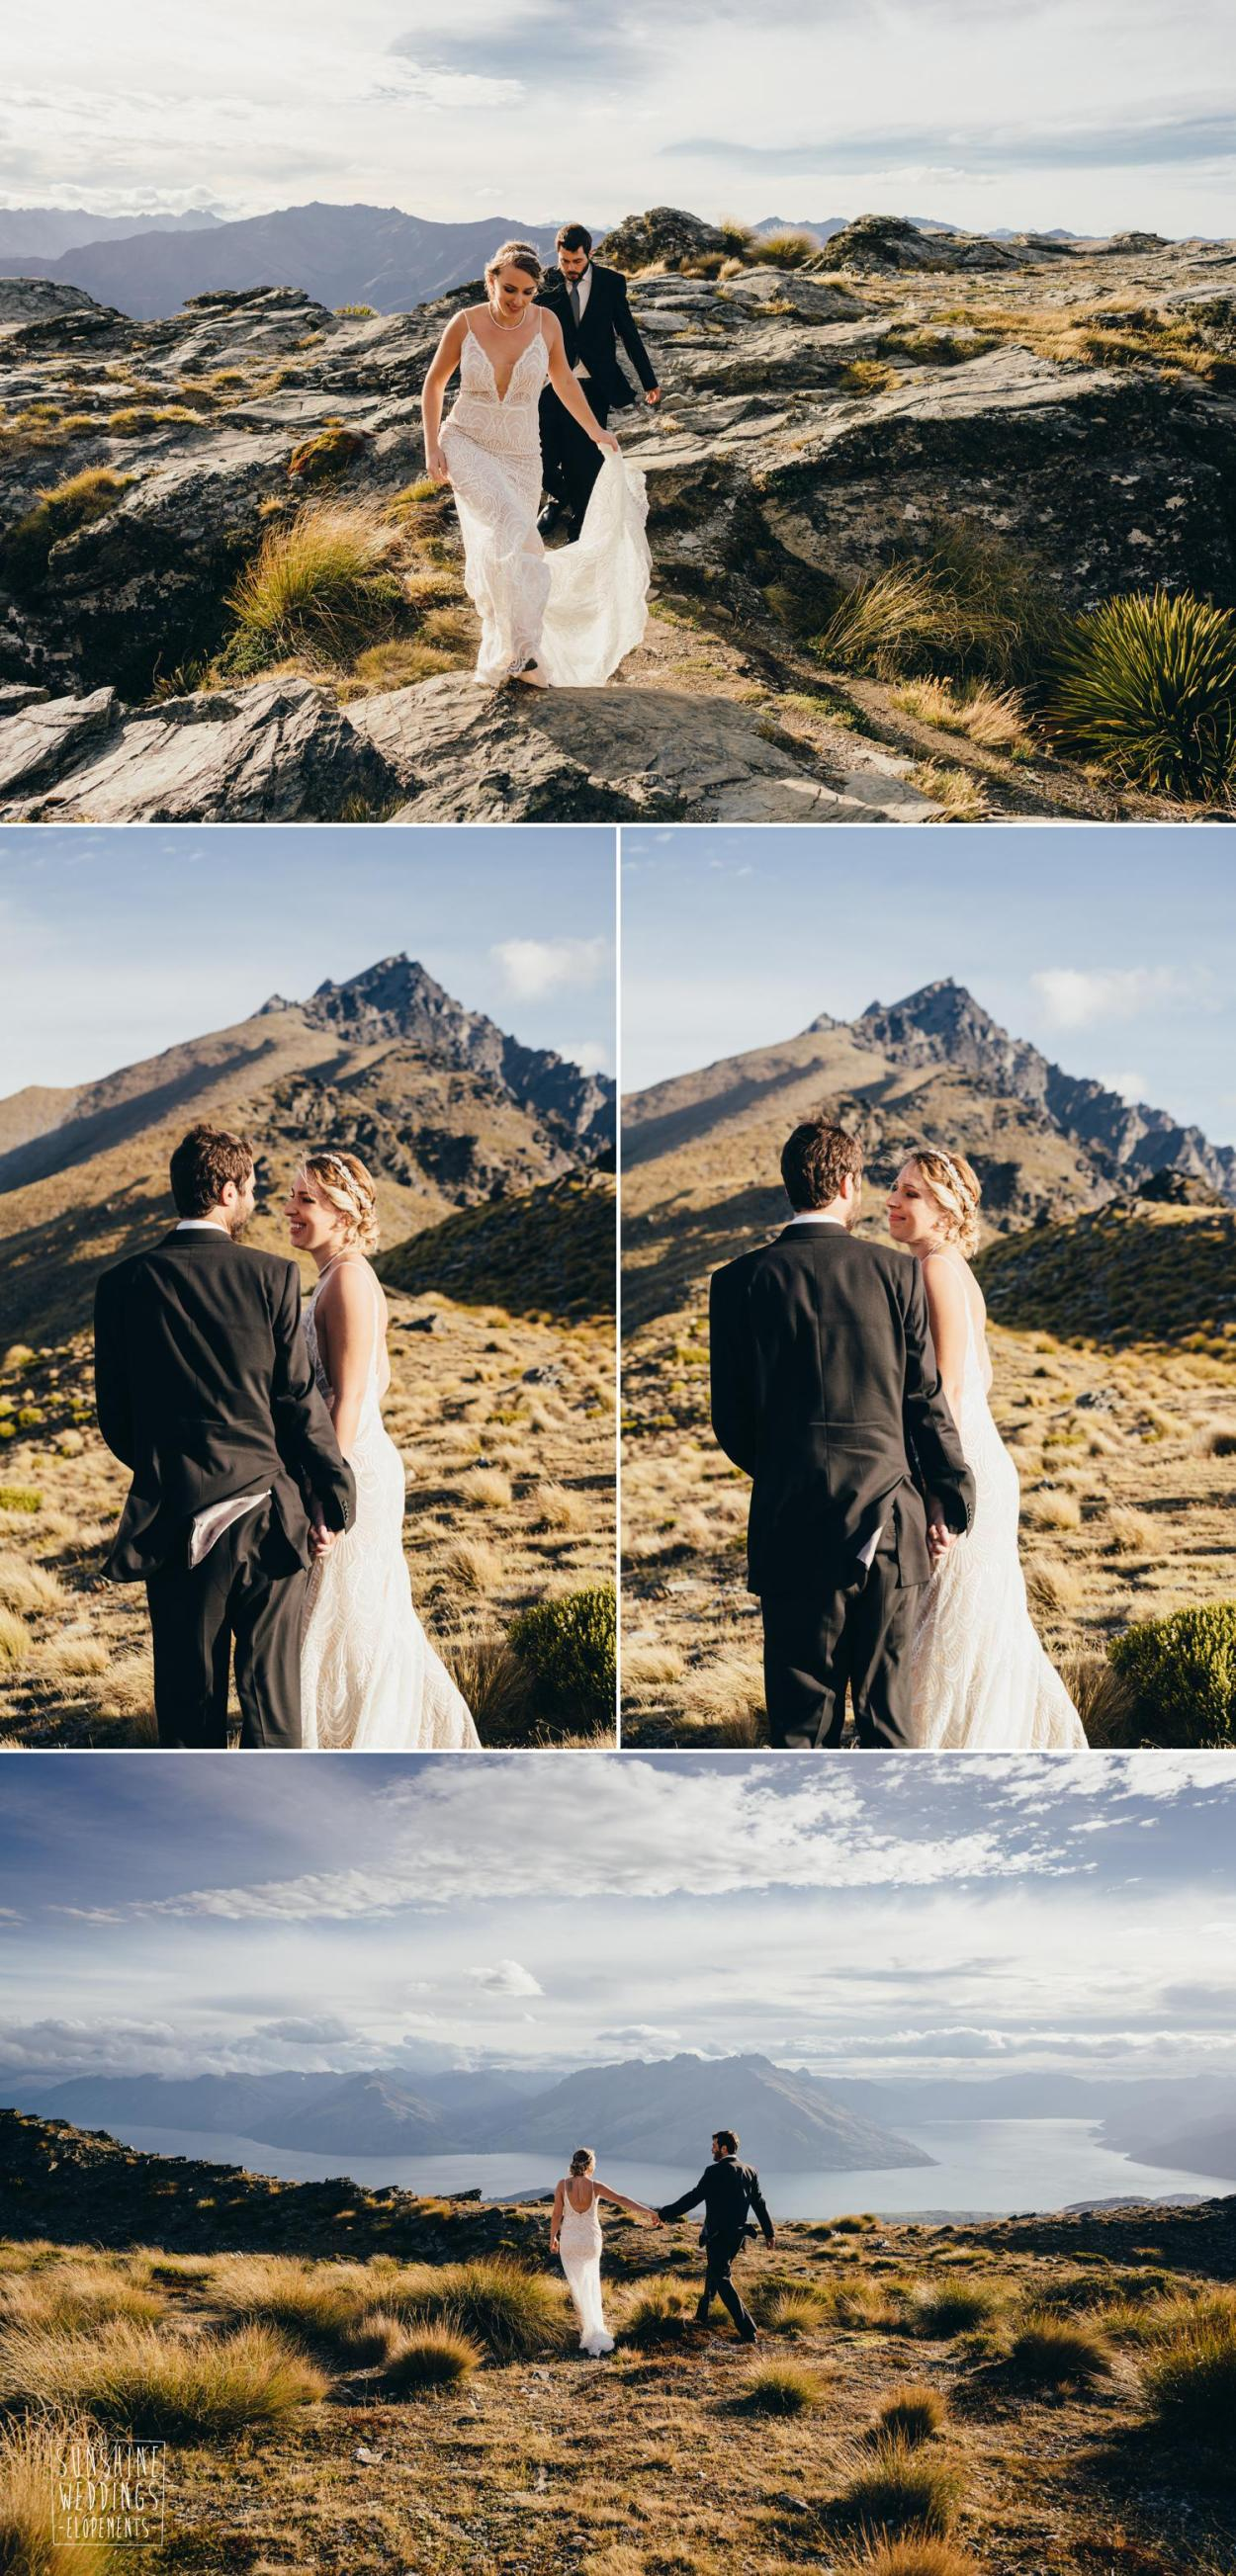 The Remarkables wedding